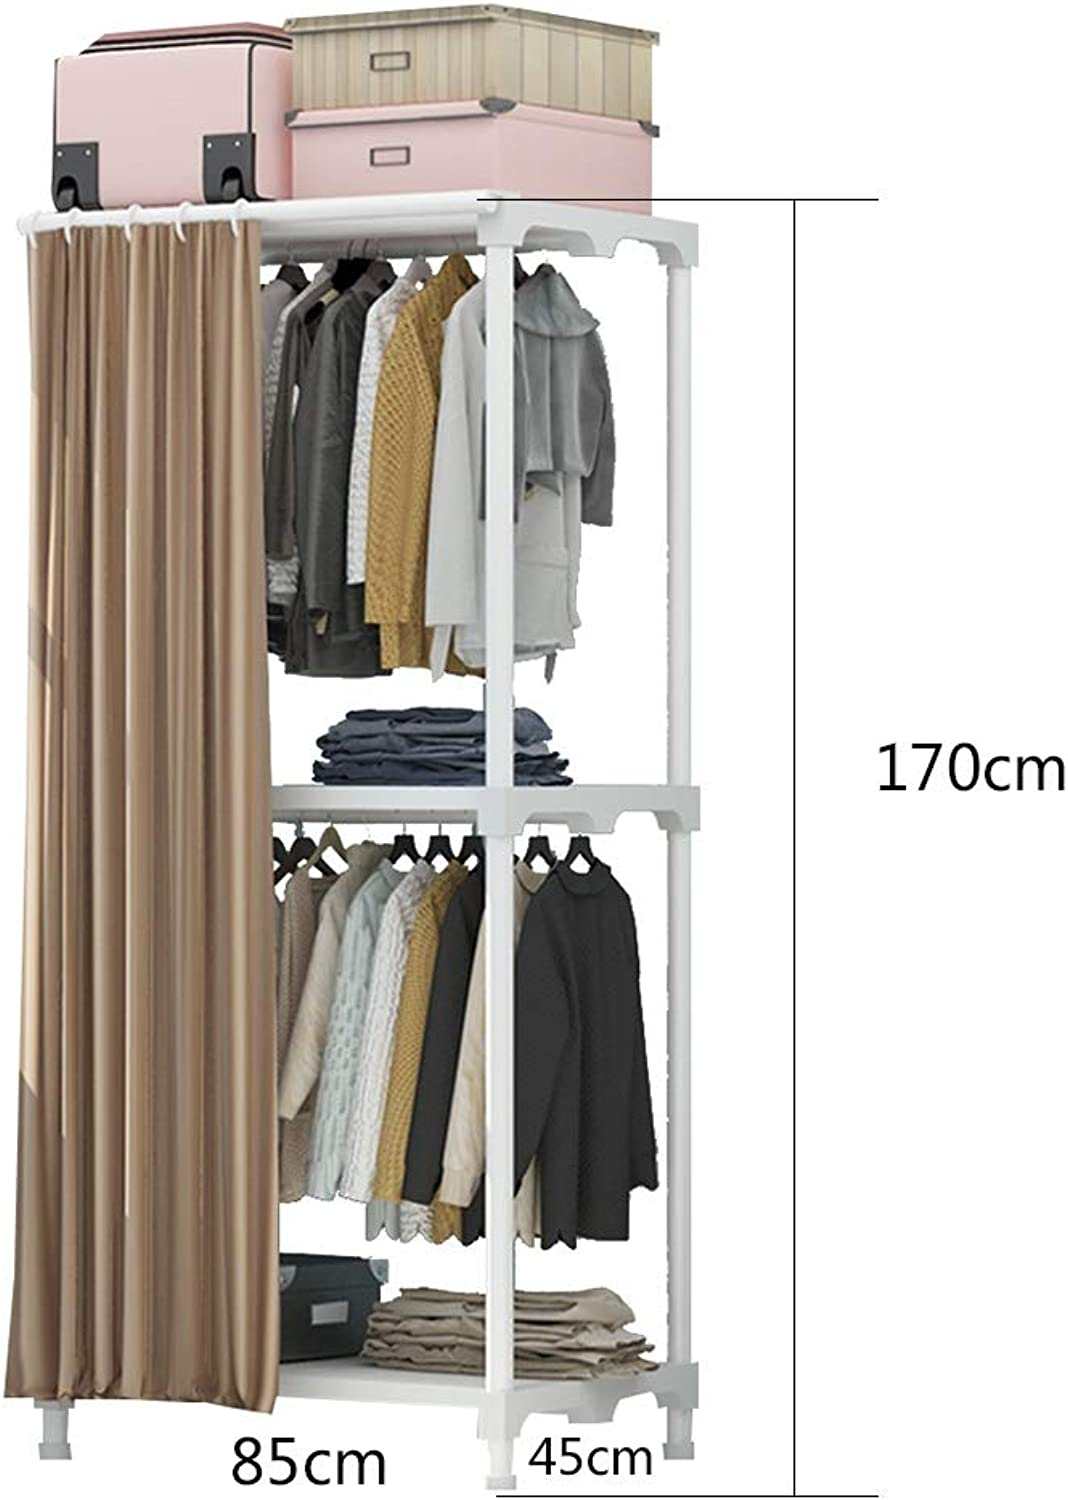 JIAYING Standing Multi-Functional Coat and shoes Rack,2-Tier Entryway Metal Coat Rack for Home Office Bedroom Max Capacity 44lbs (color   Coffee)